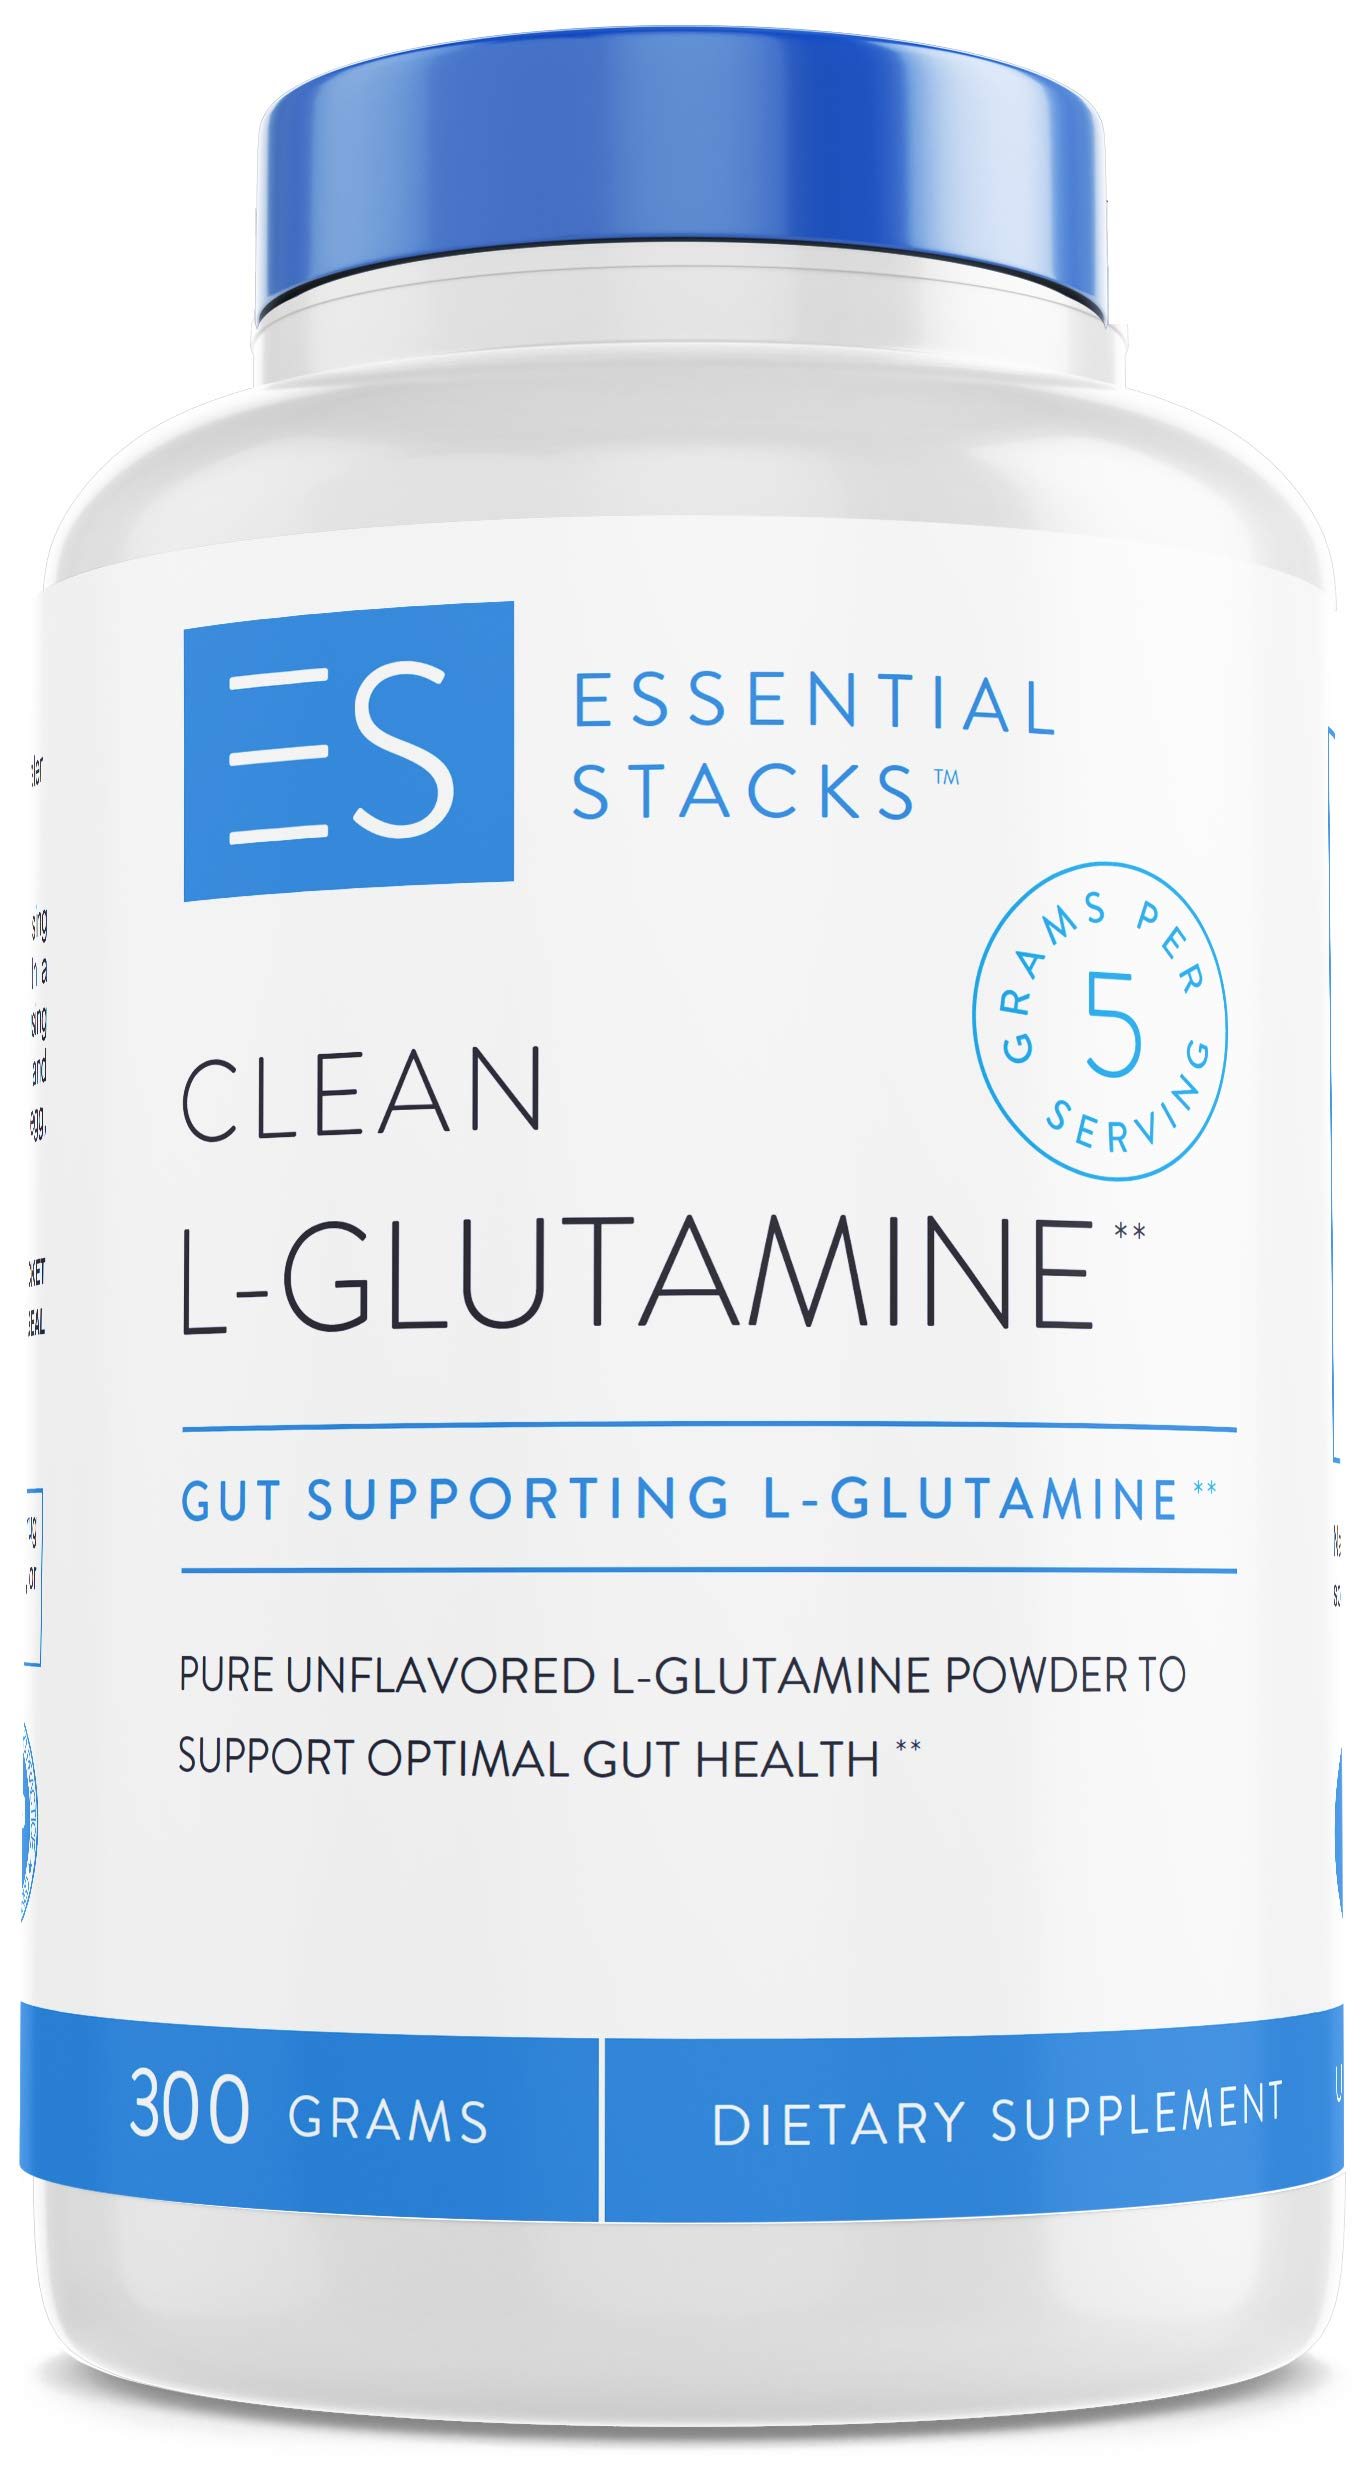 Essential Stacks Clean L-Glutamine Powder - Designed for Optimal Gut Health - Pure Unflavored L-Glutamine Powder That Mixes Easily & Has No Odor